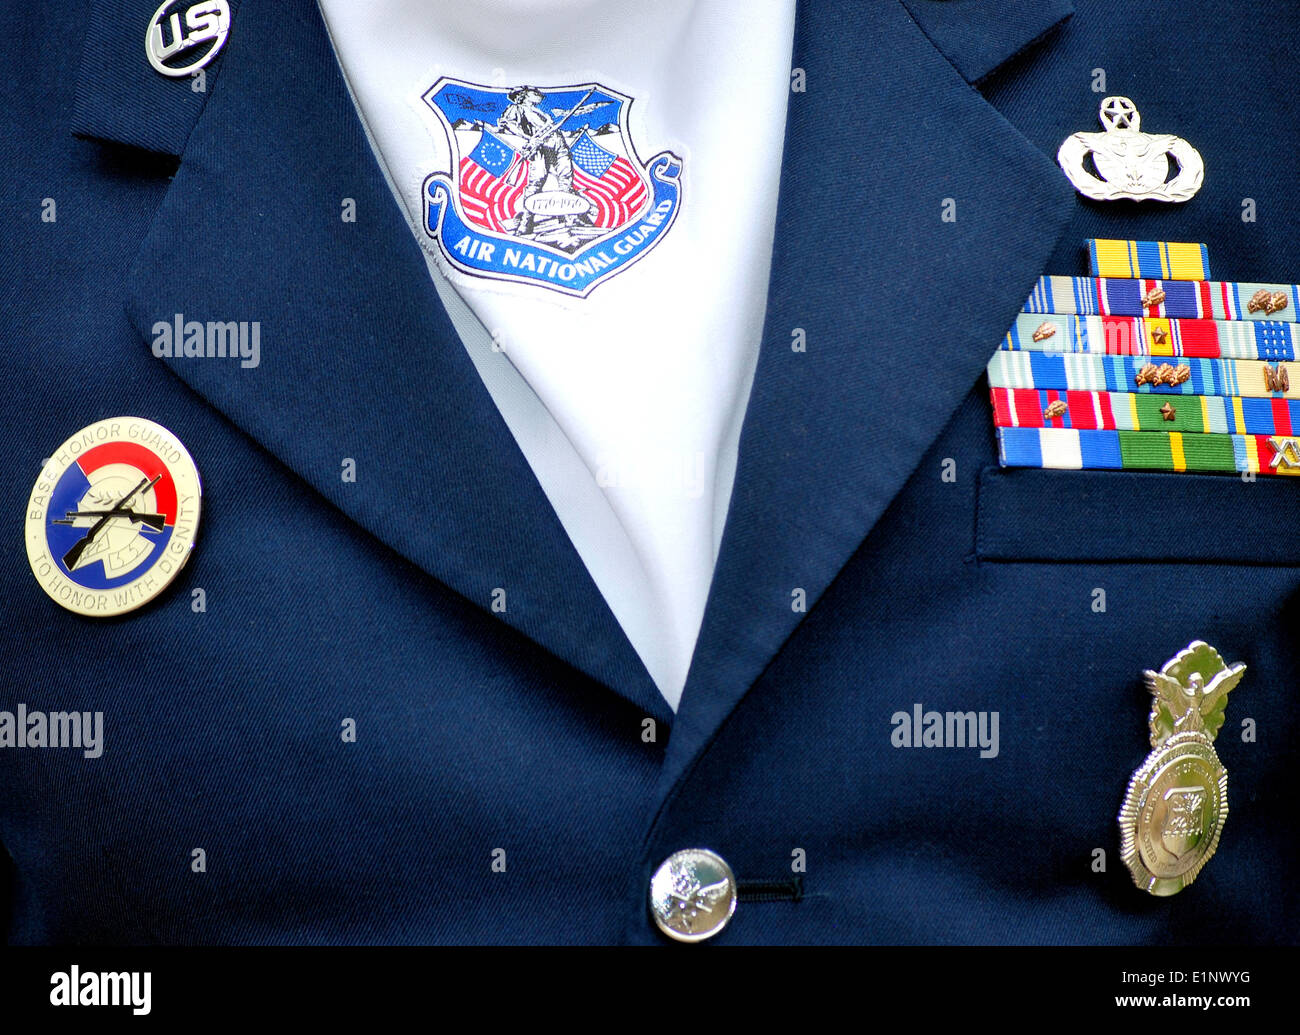 Air national guard standing tall and proud. - Stock Image